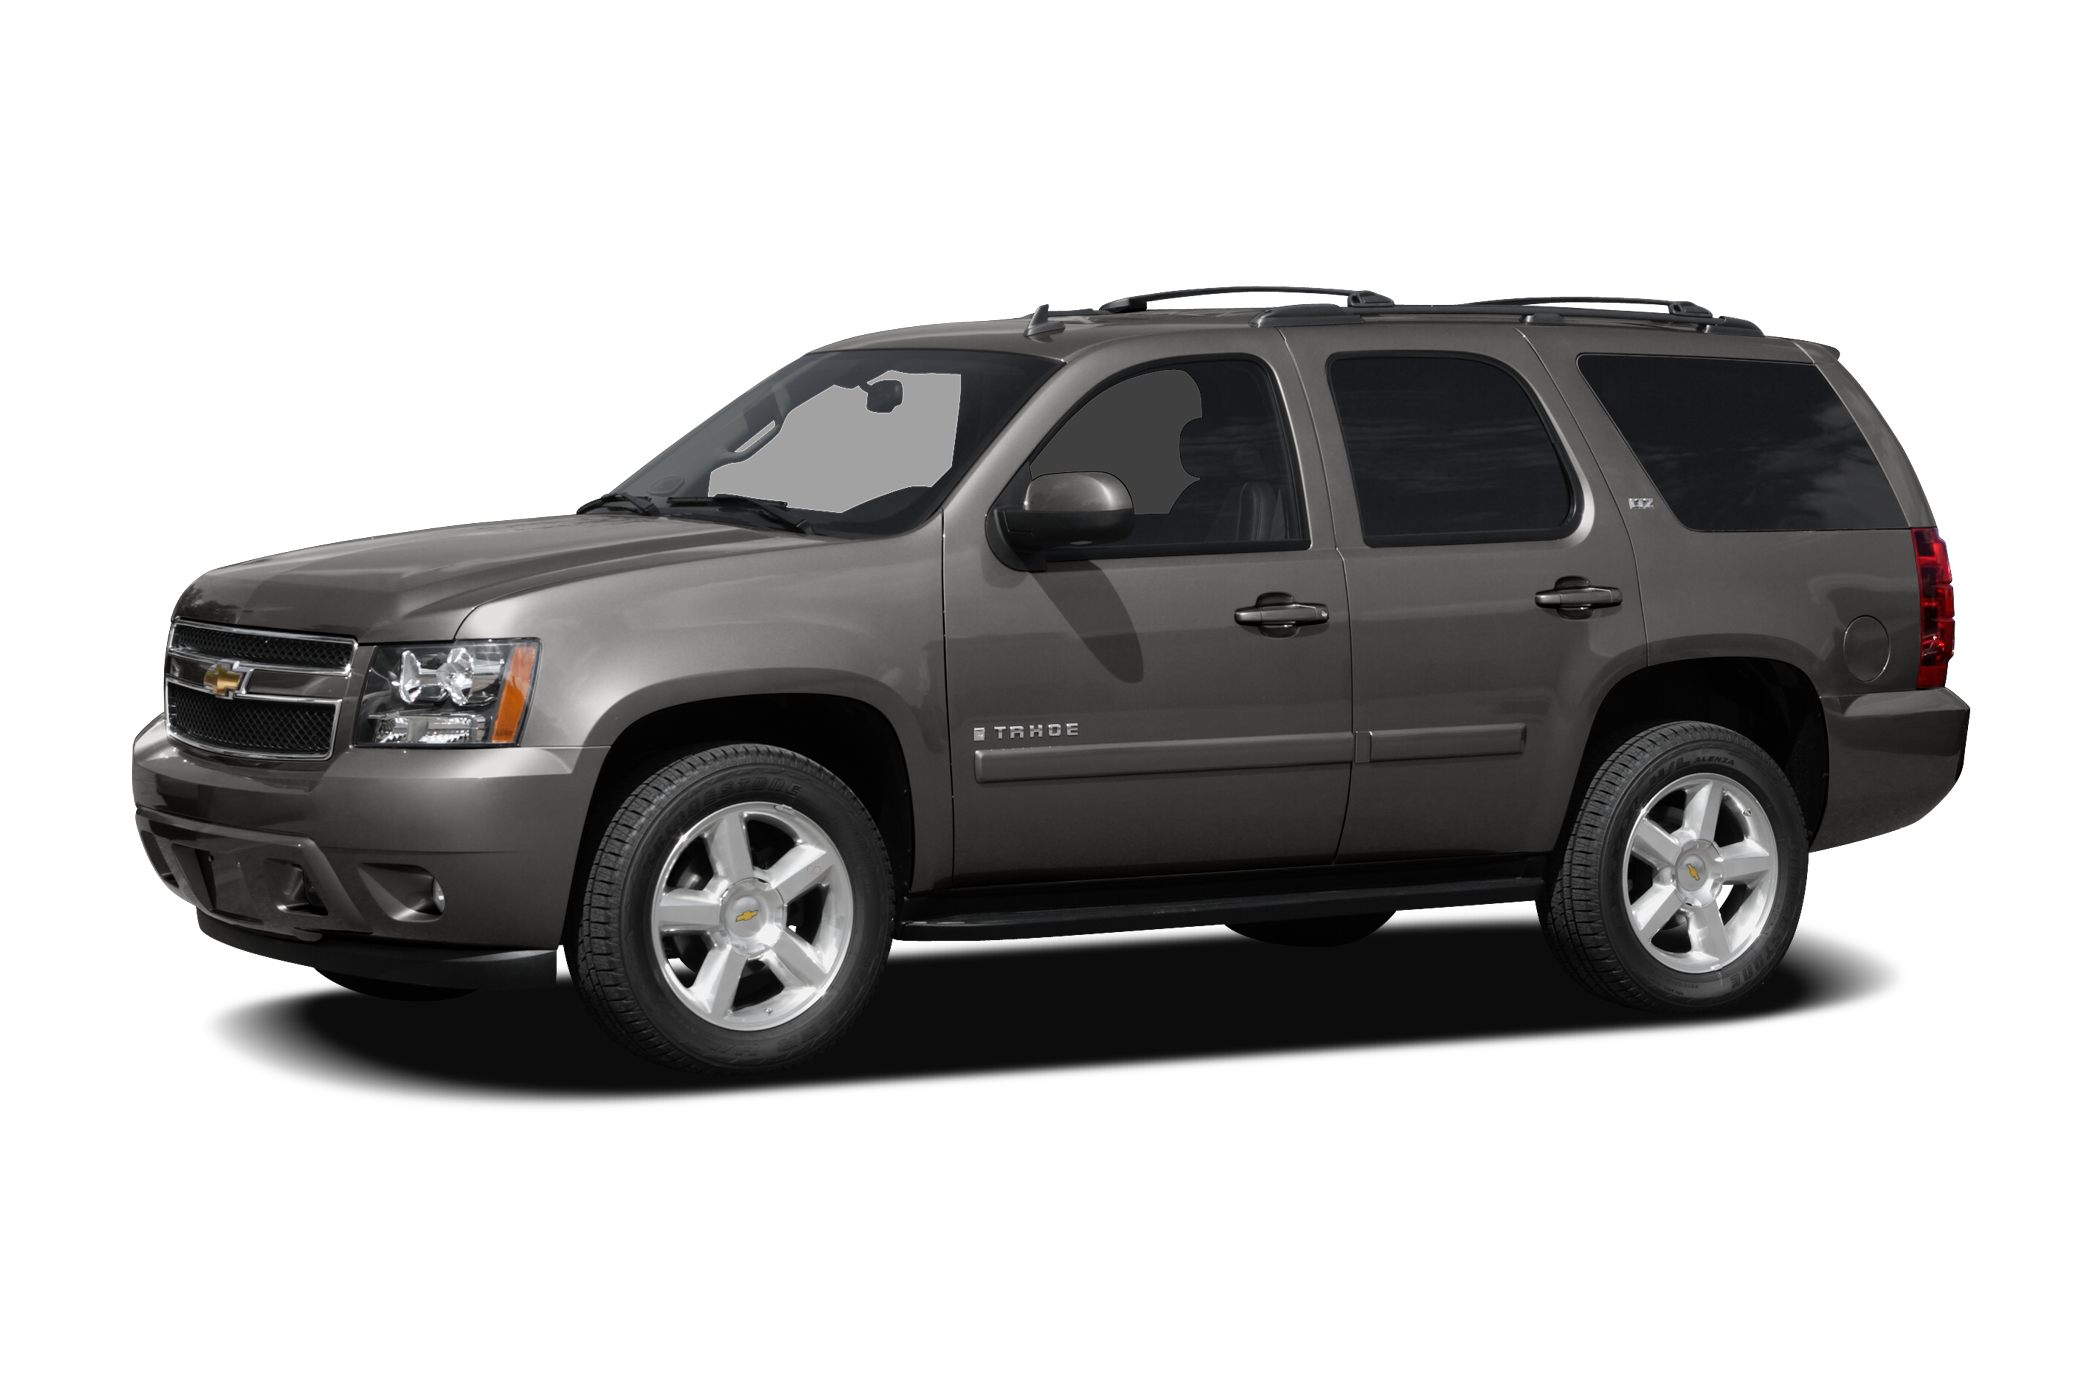 2007 Chevrolet Tahoe Information